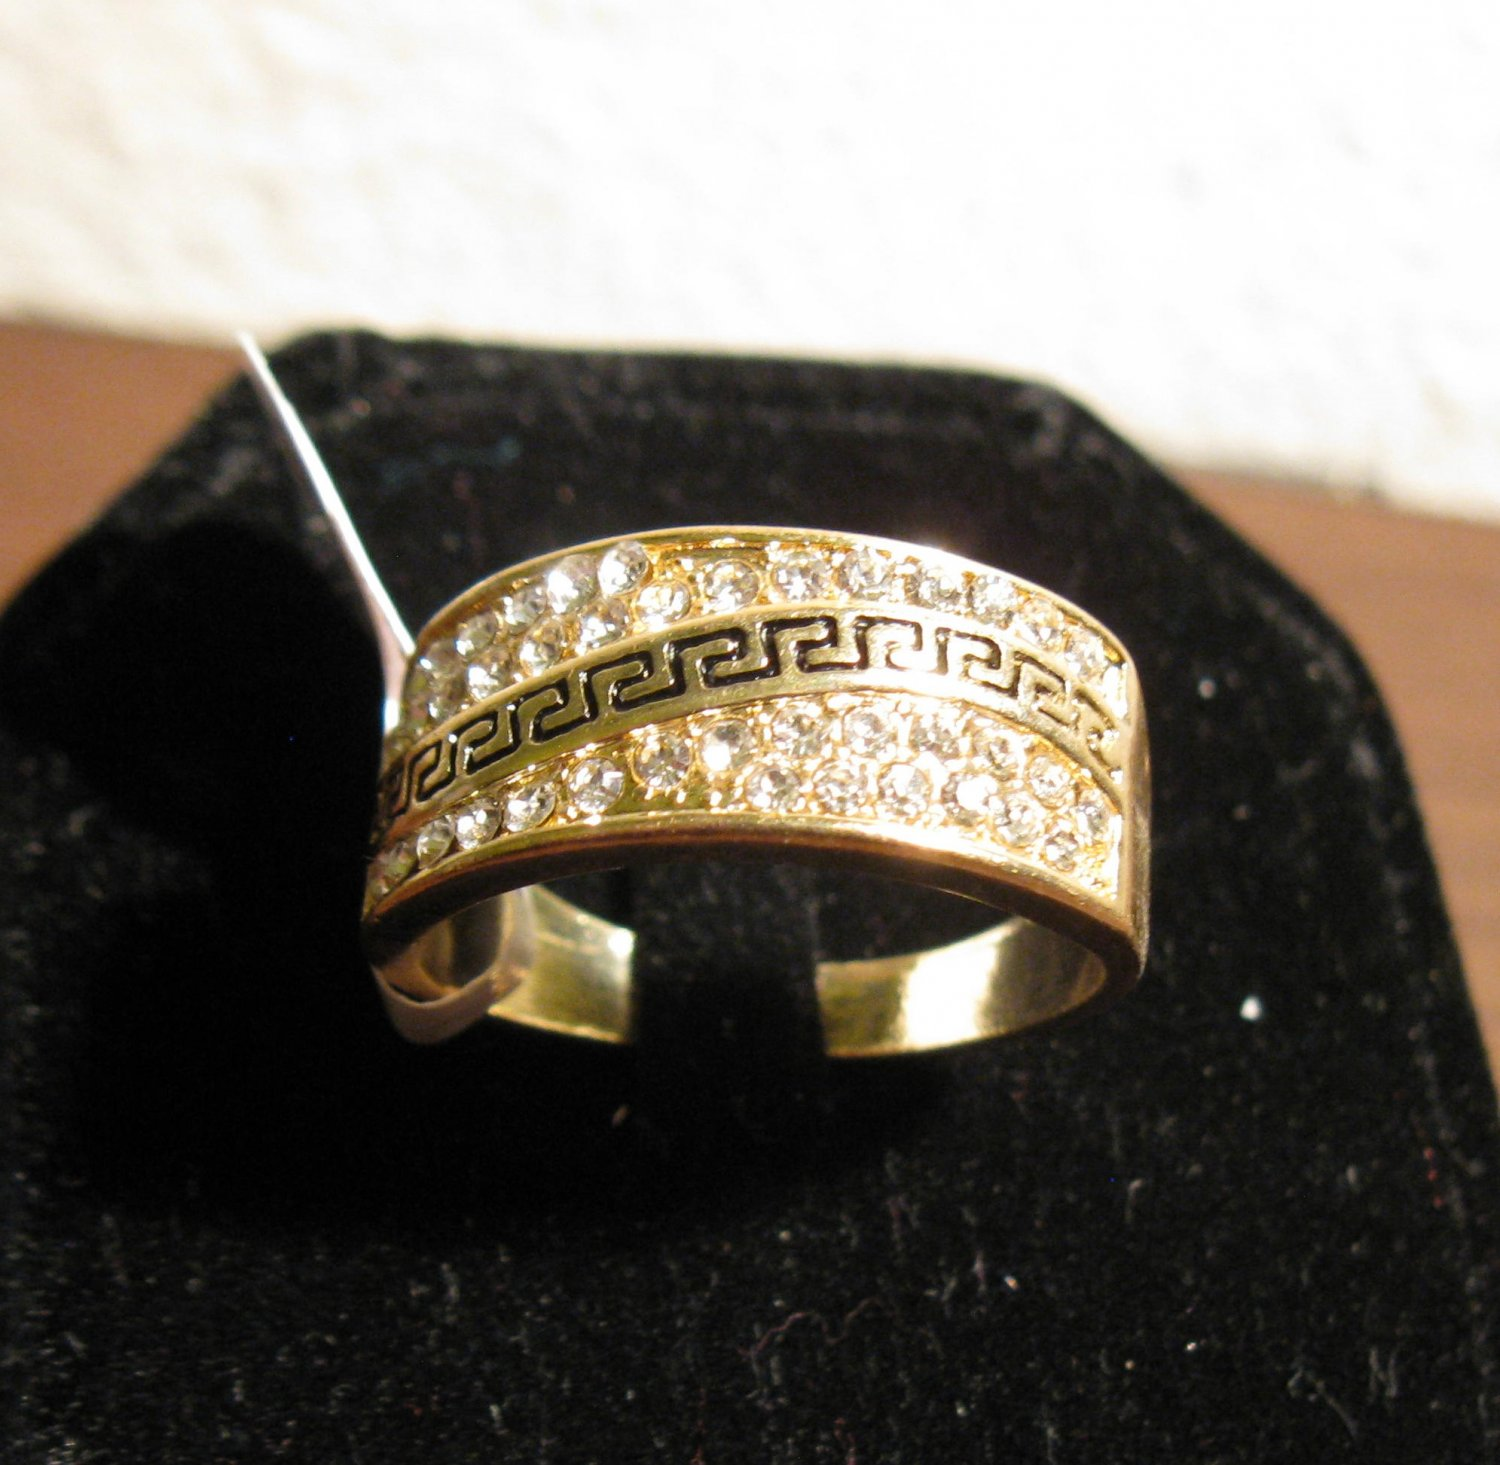 Beautiful Wide CZ Cluster Greek Key Band Ring Unisex Size 10 New! #D967